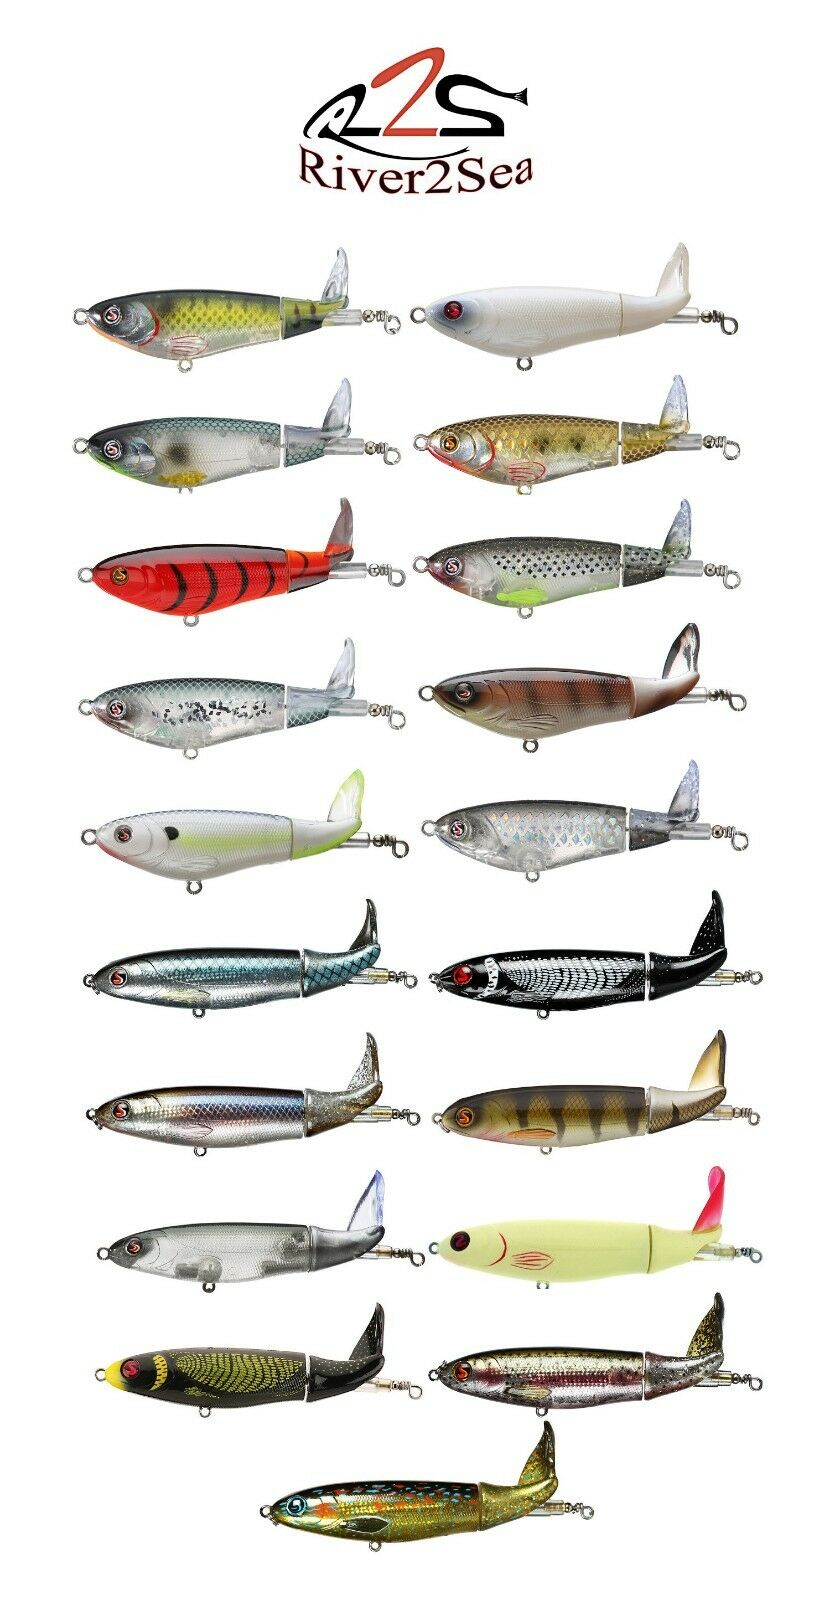 "River2Sea Whopper Plopper *90* Topwater Prop Bait Lure 3 1/2"" - Assorted Colors"